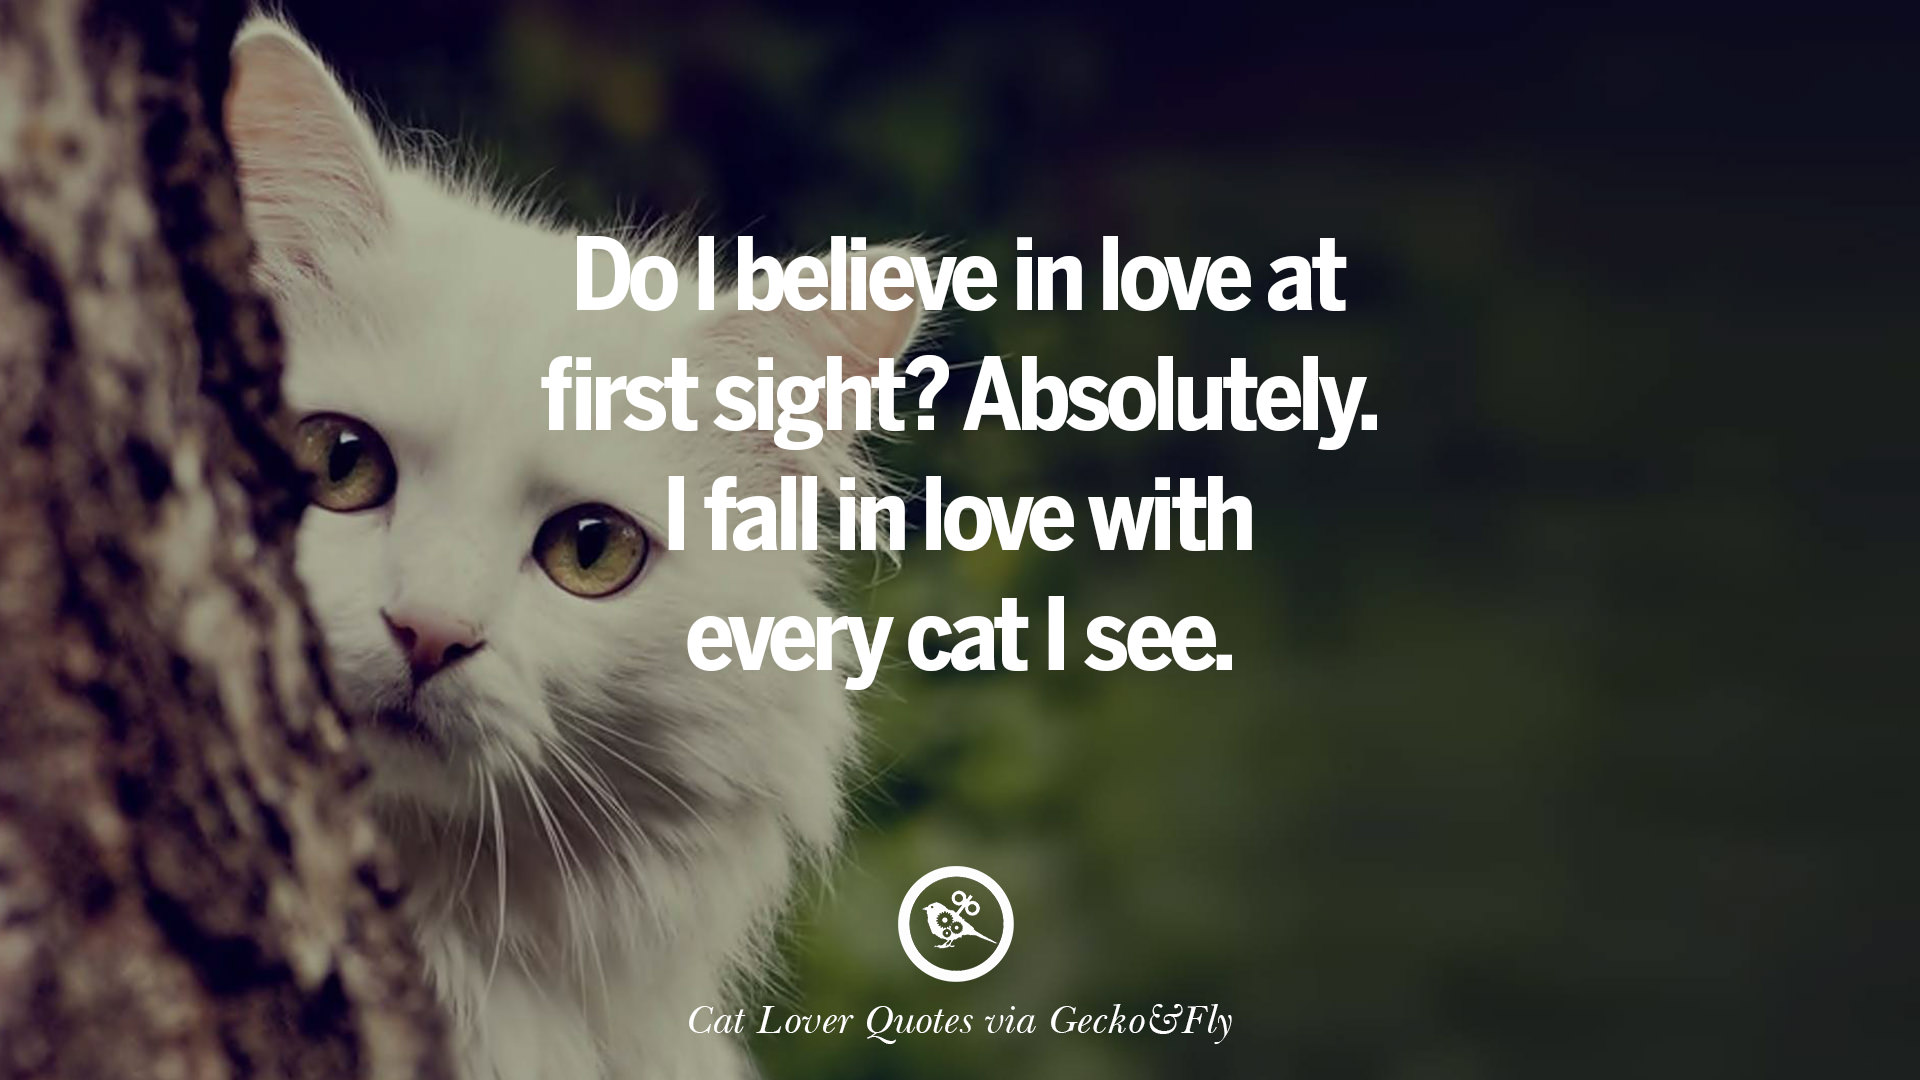 Cat Quotes | 25 Cute Cat Images With Quotes For Crazy Cat Ladies Gentlemen And